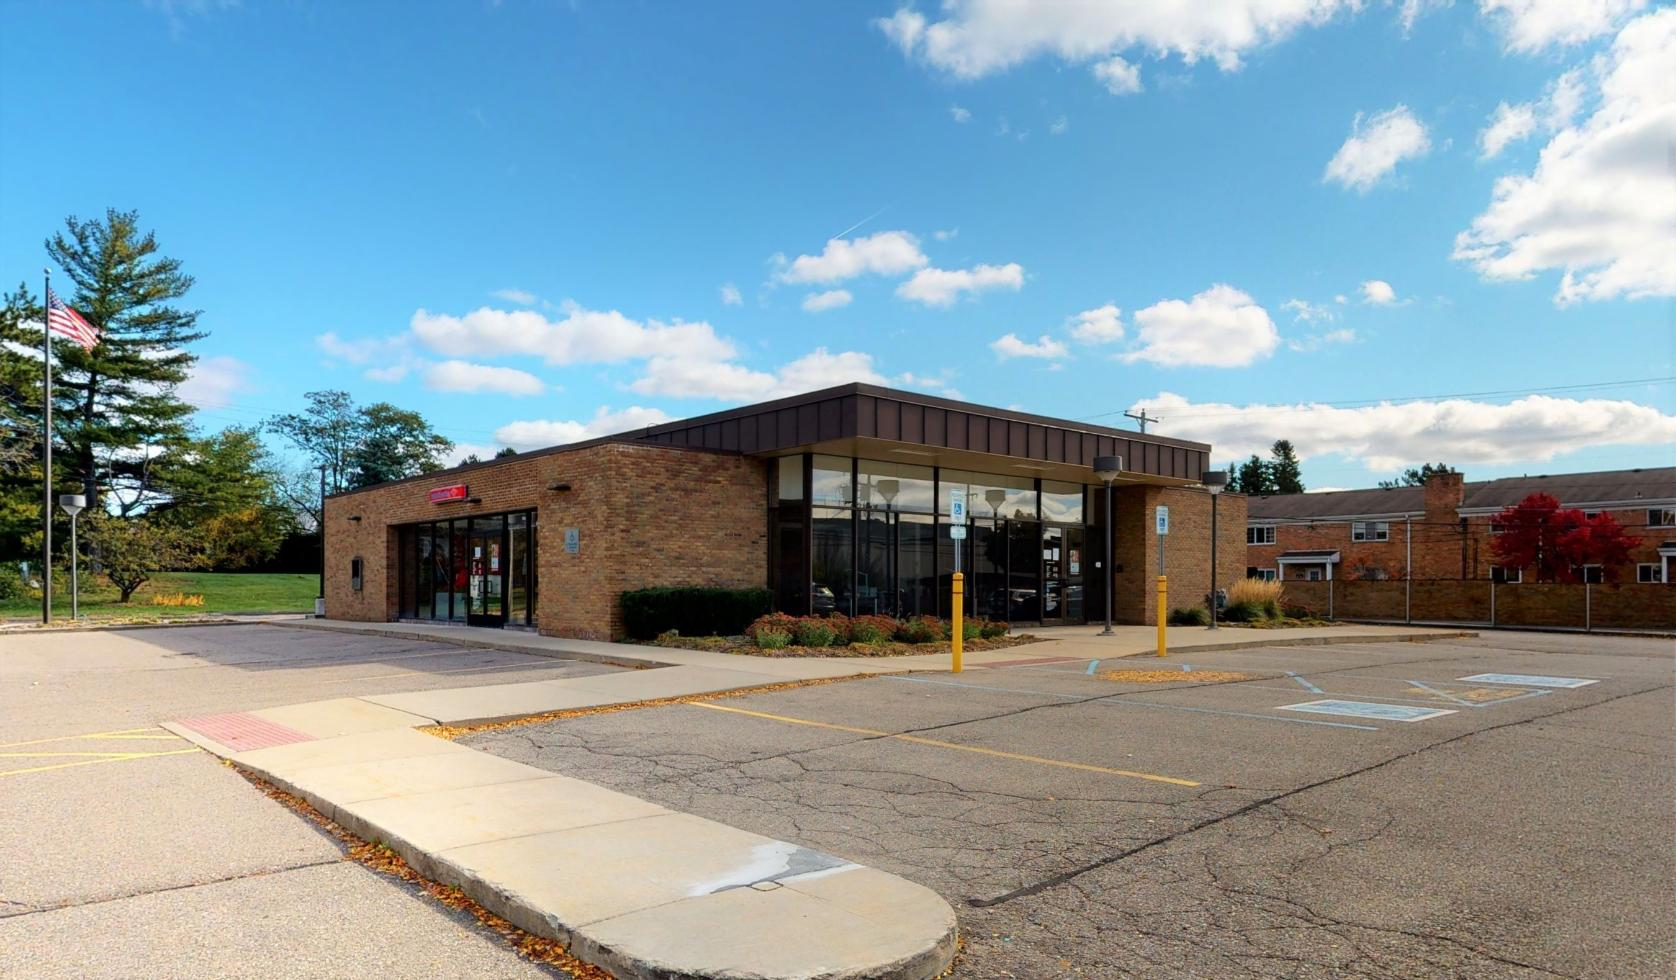 Bank of America financial center with drive-thru ATM and teller | 825 W Long Lake Rd, Bloomfield Hills, MI 48302